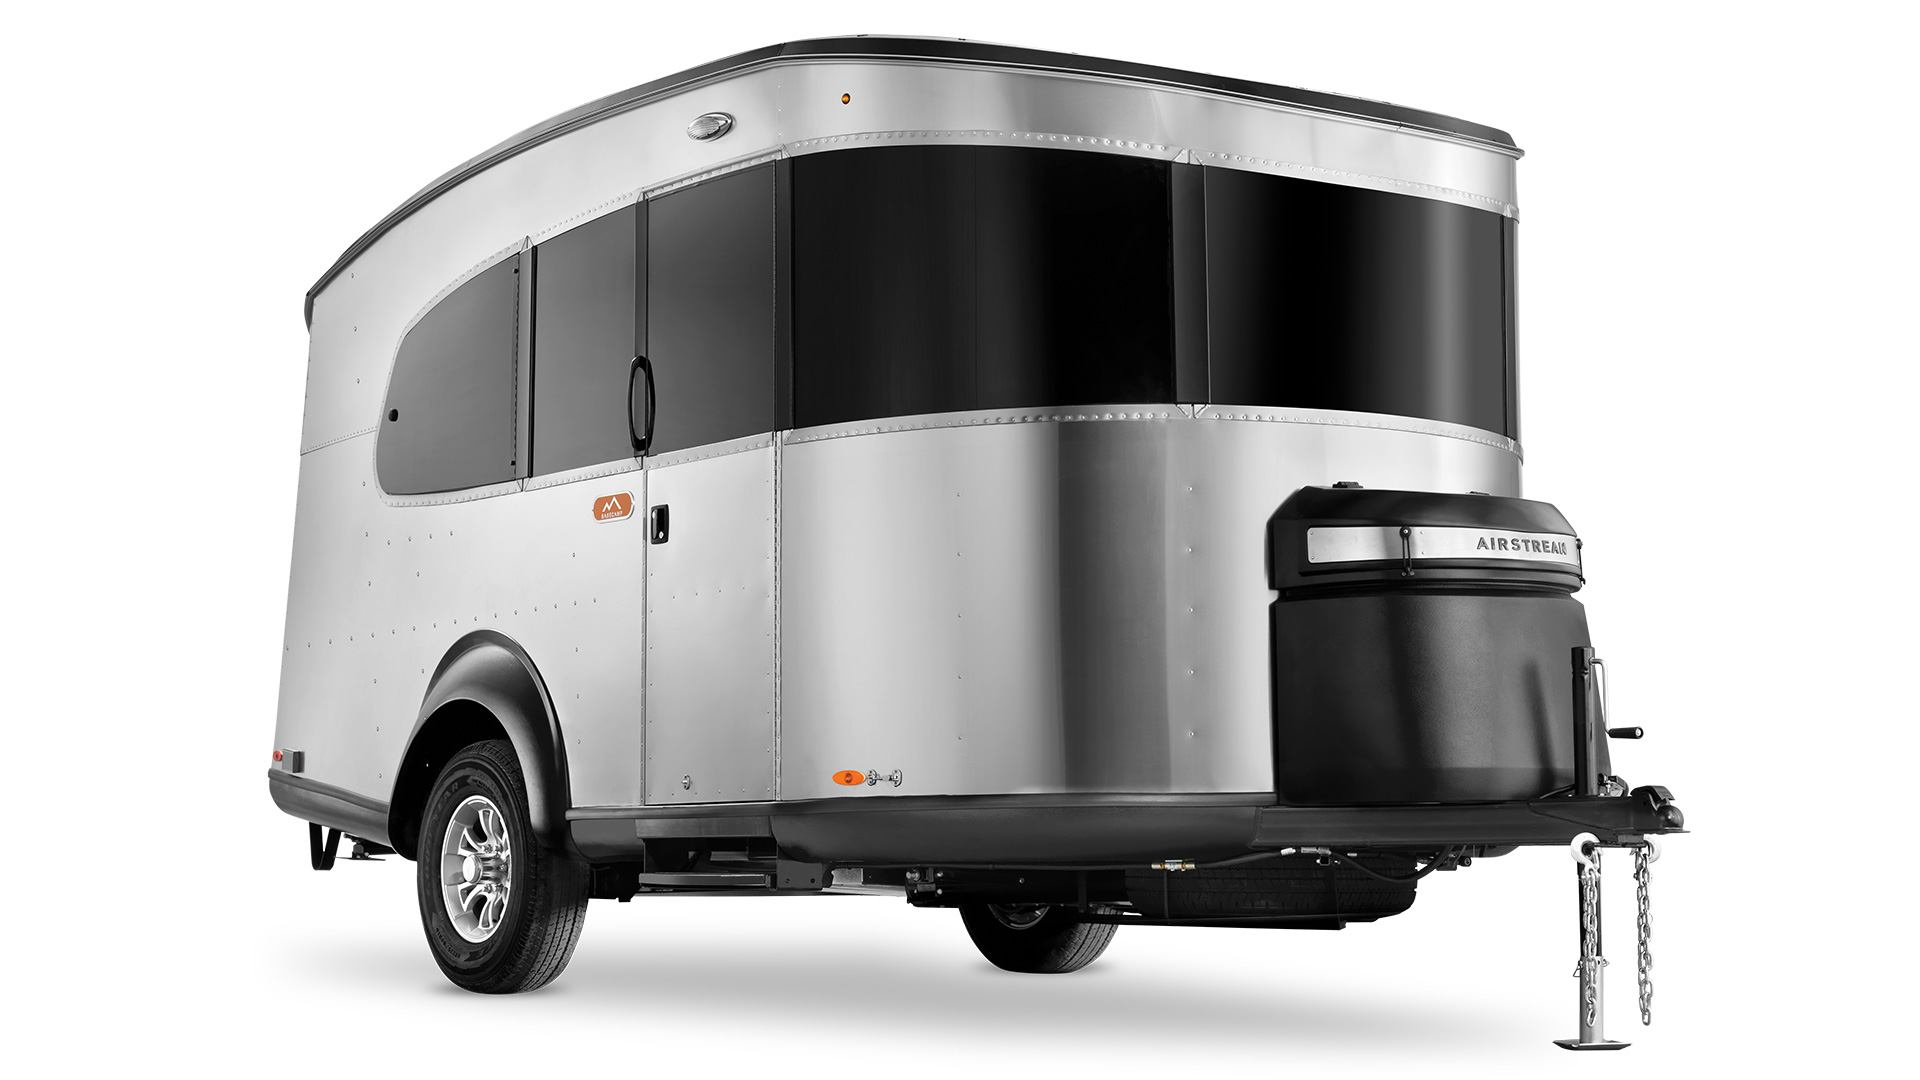 Airstream-Basecamp-20-Exterior-3QTR-Profile